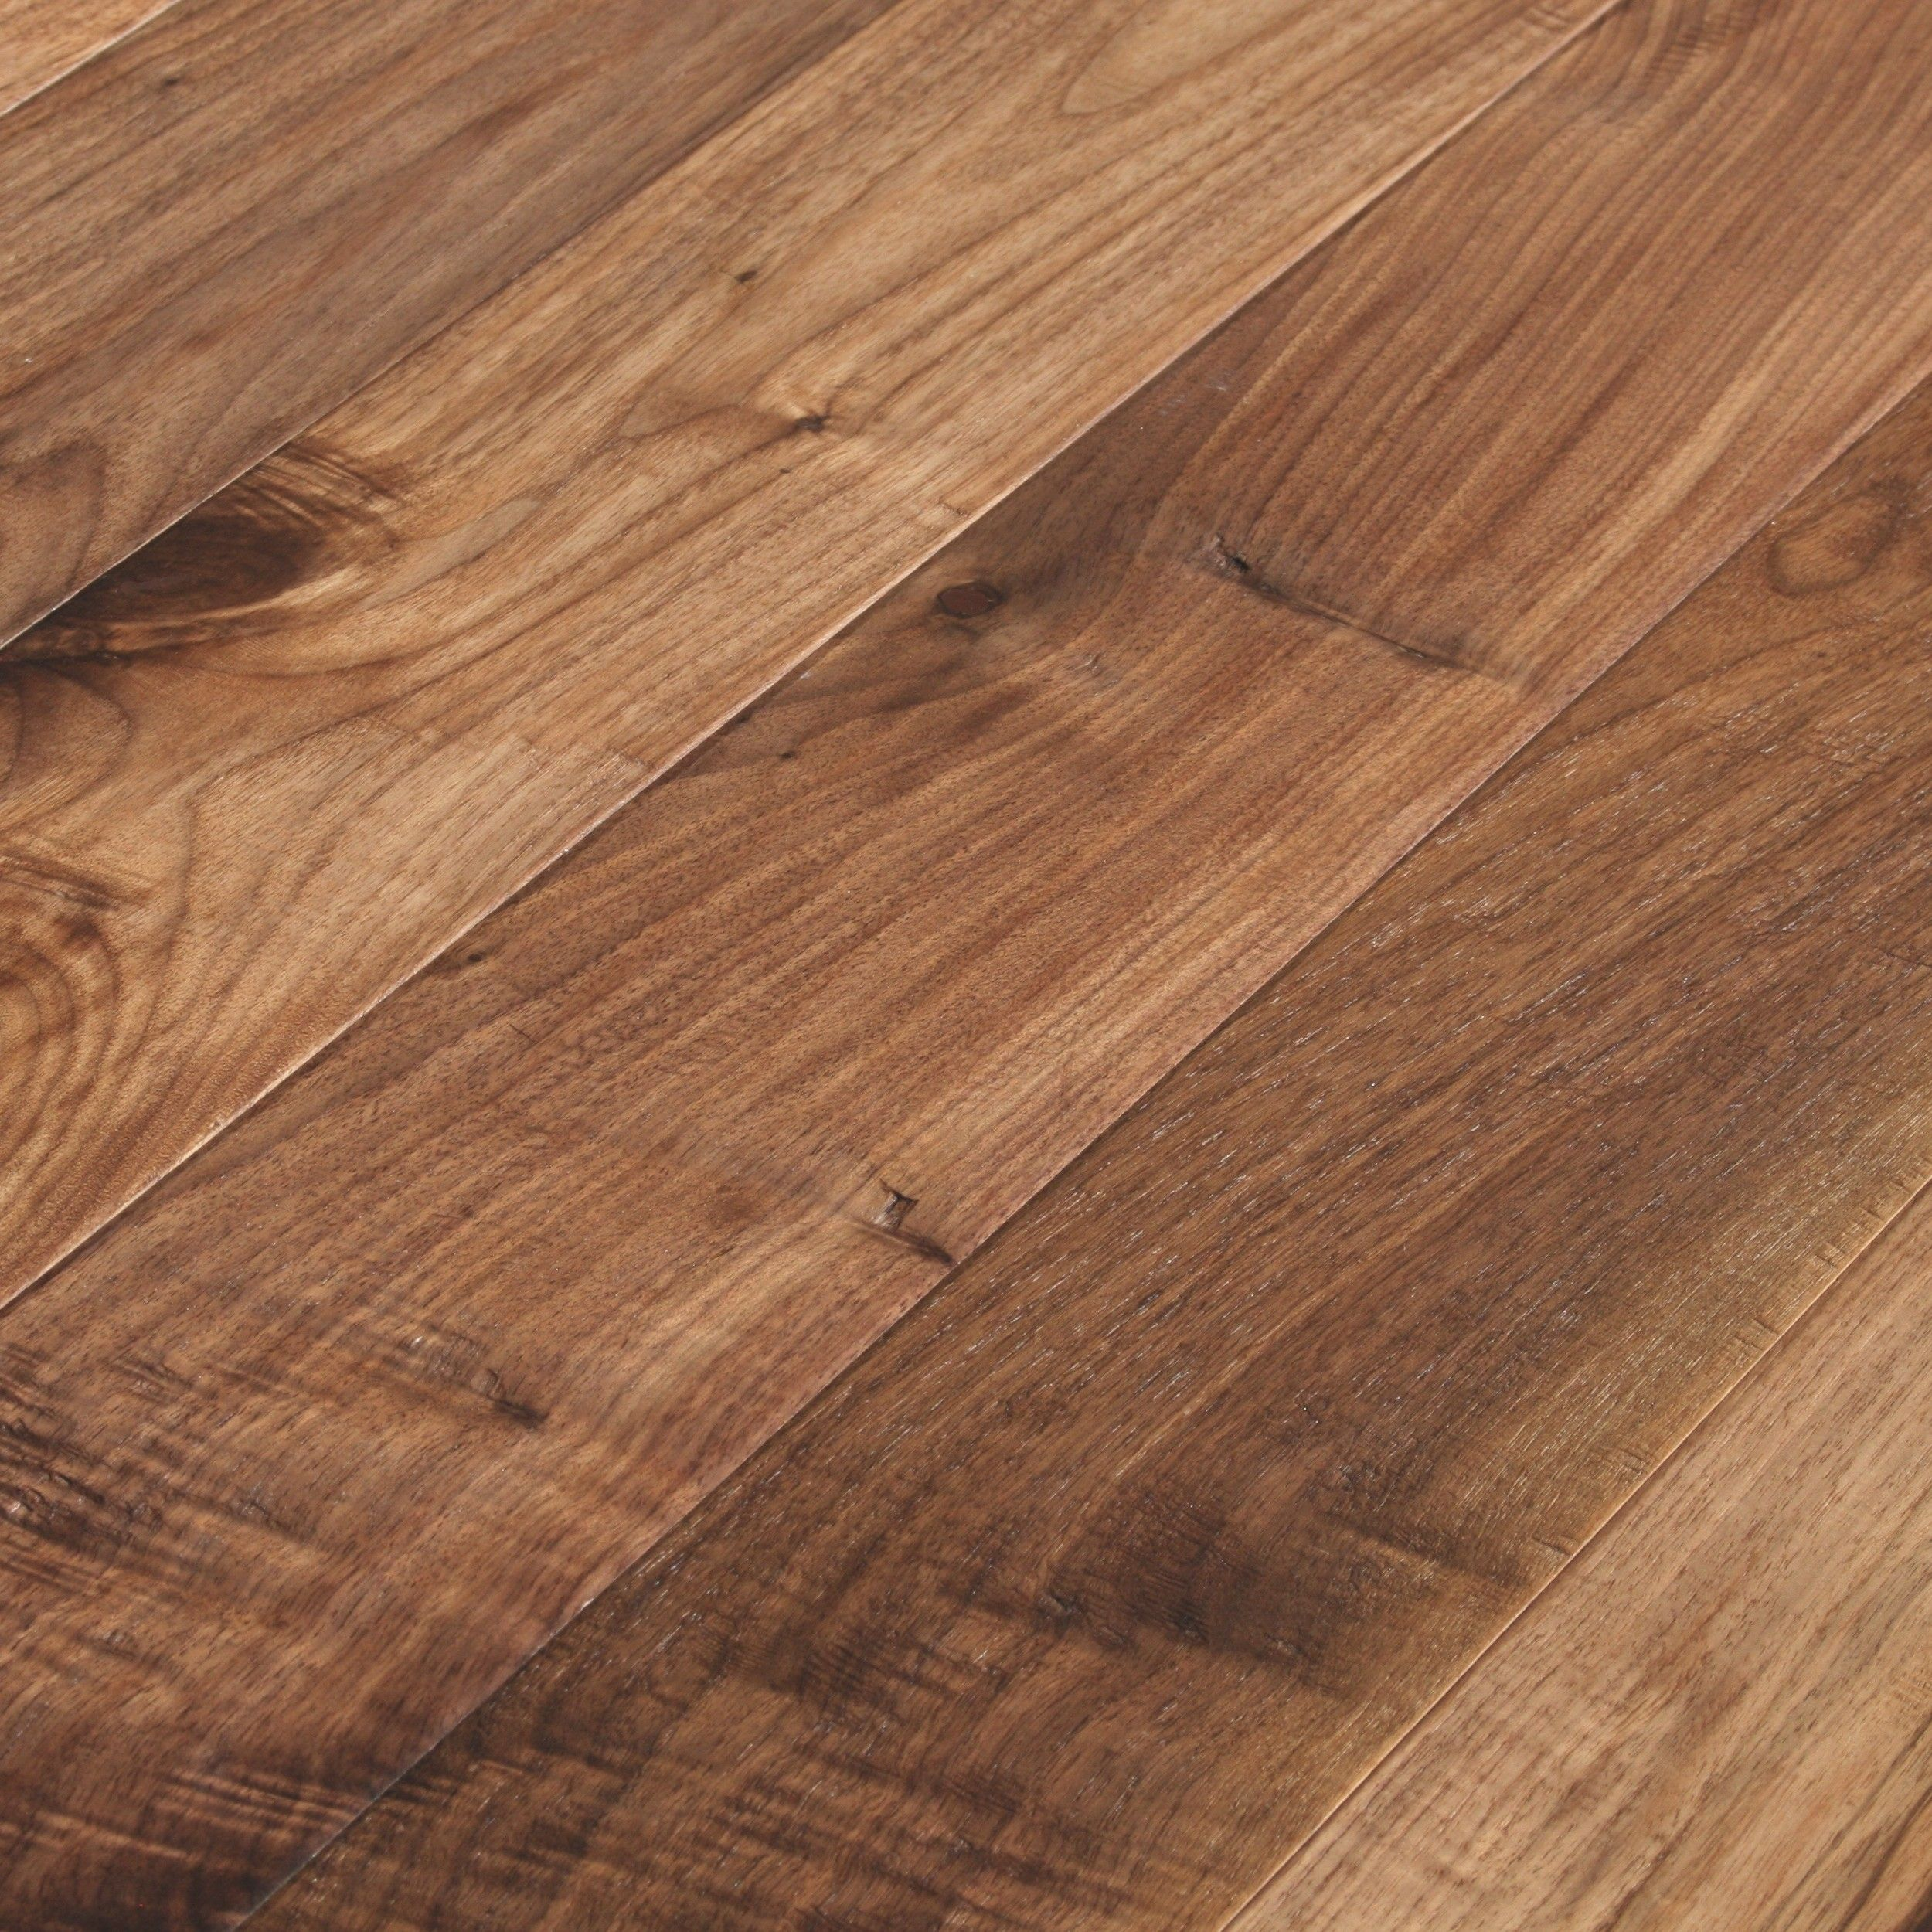 Millennium walnut oiled natural hand scraped flooring for Walnut hardwood flooring